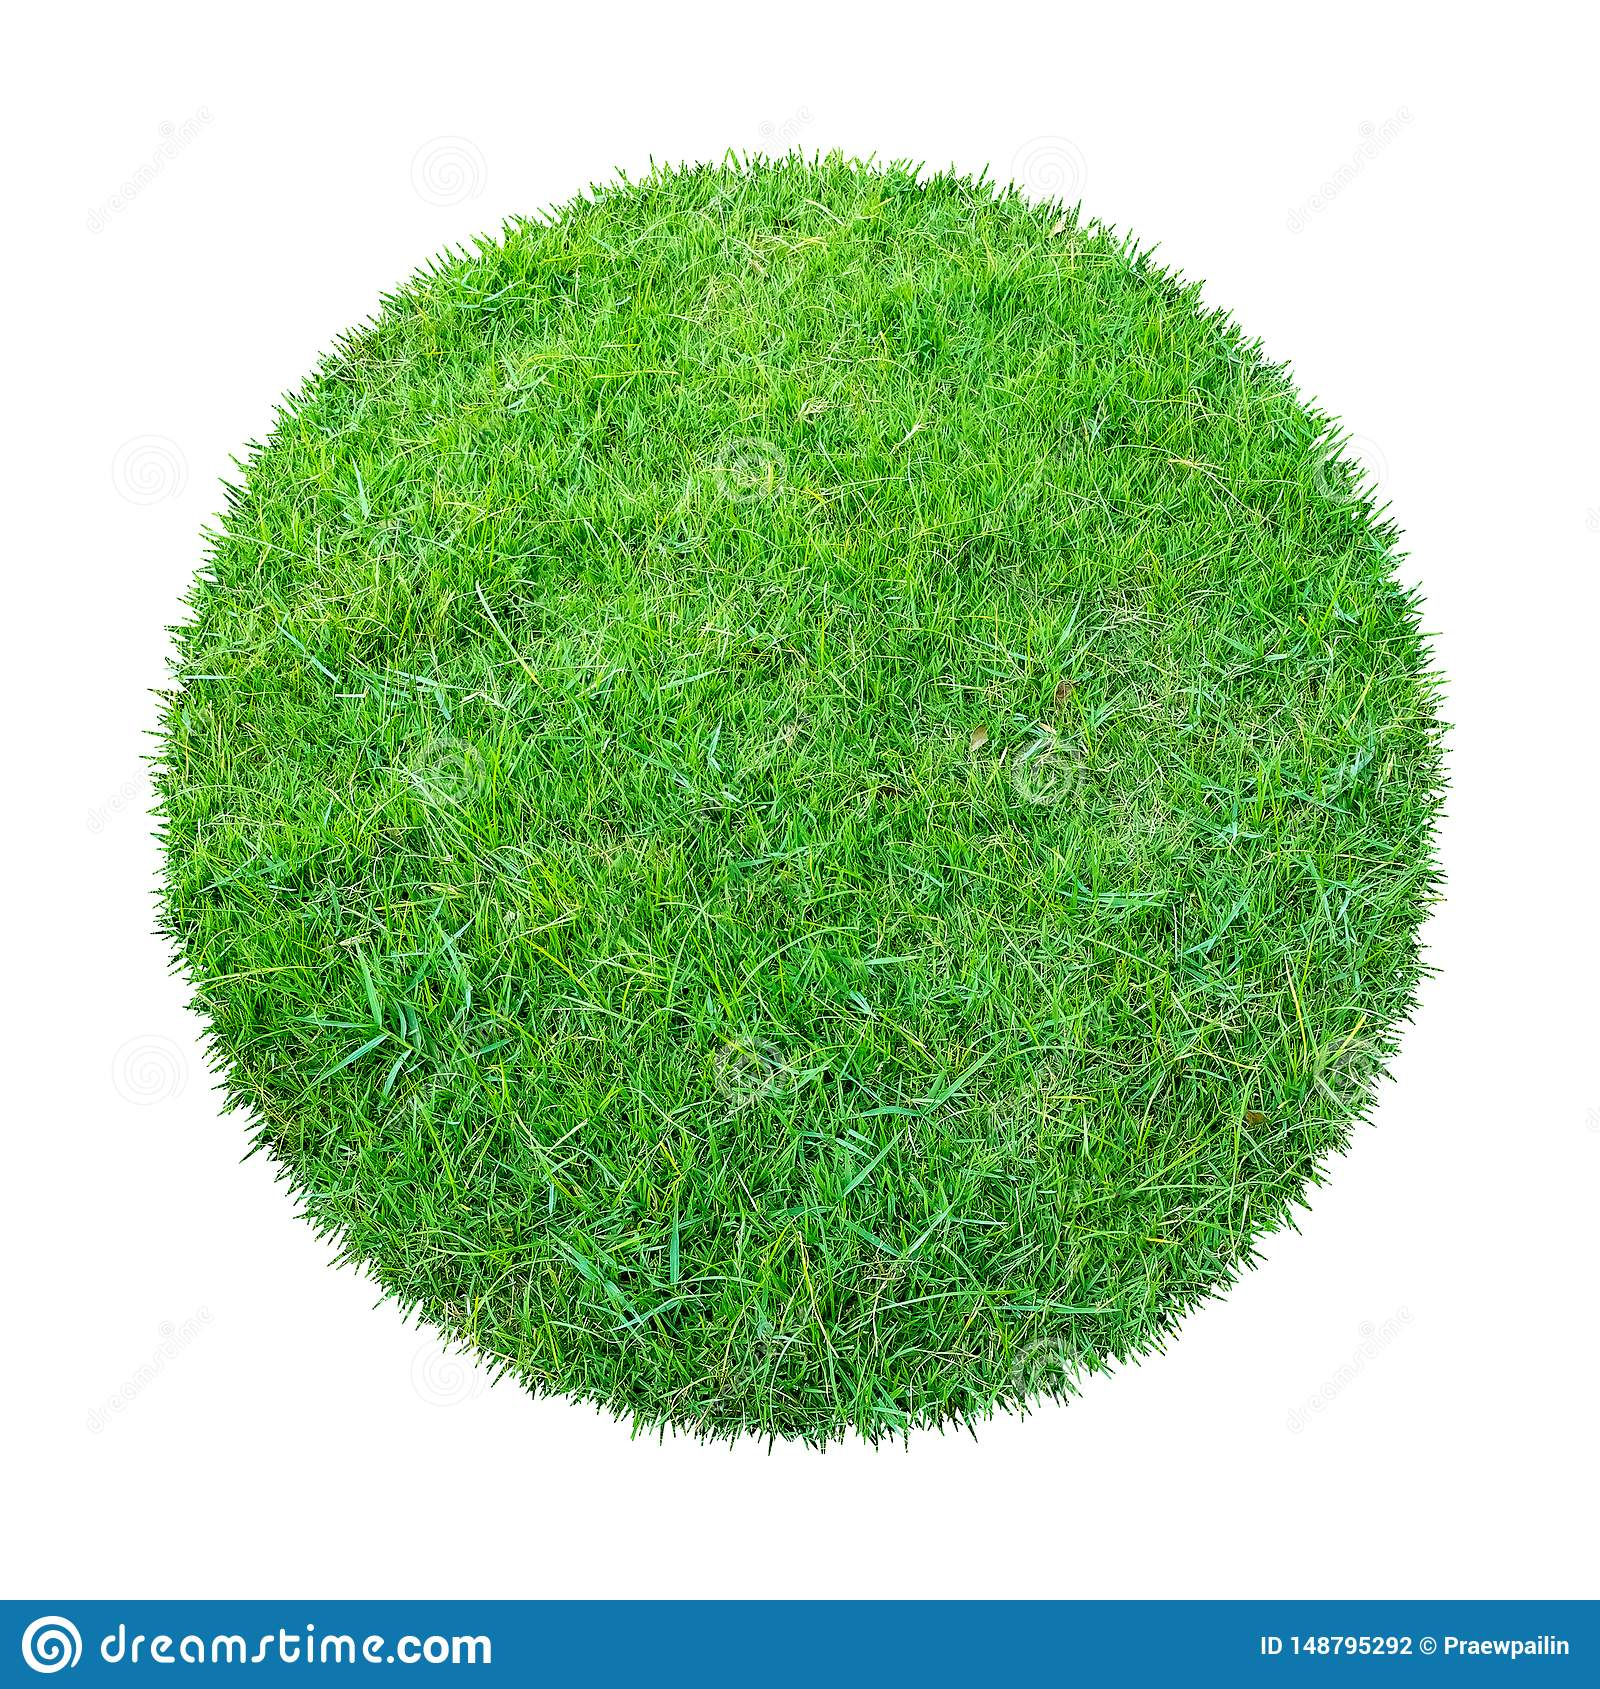 Abstract green grass texture for background. Circle green grass pattern isolated on white background with clipping path